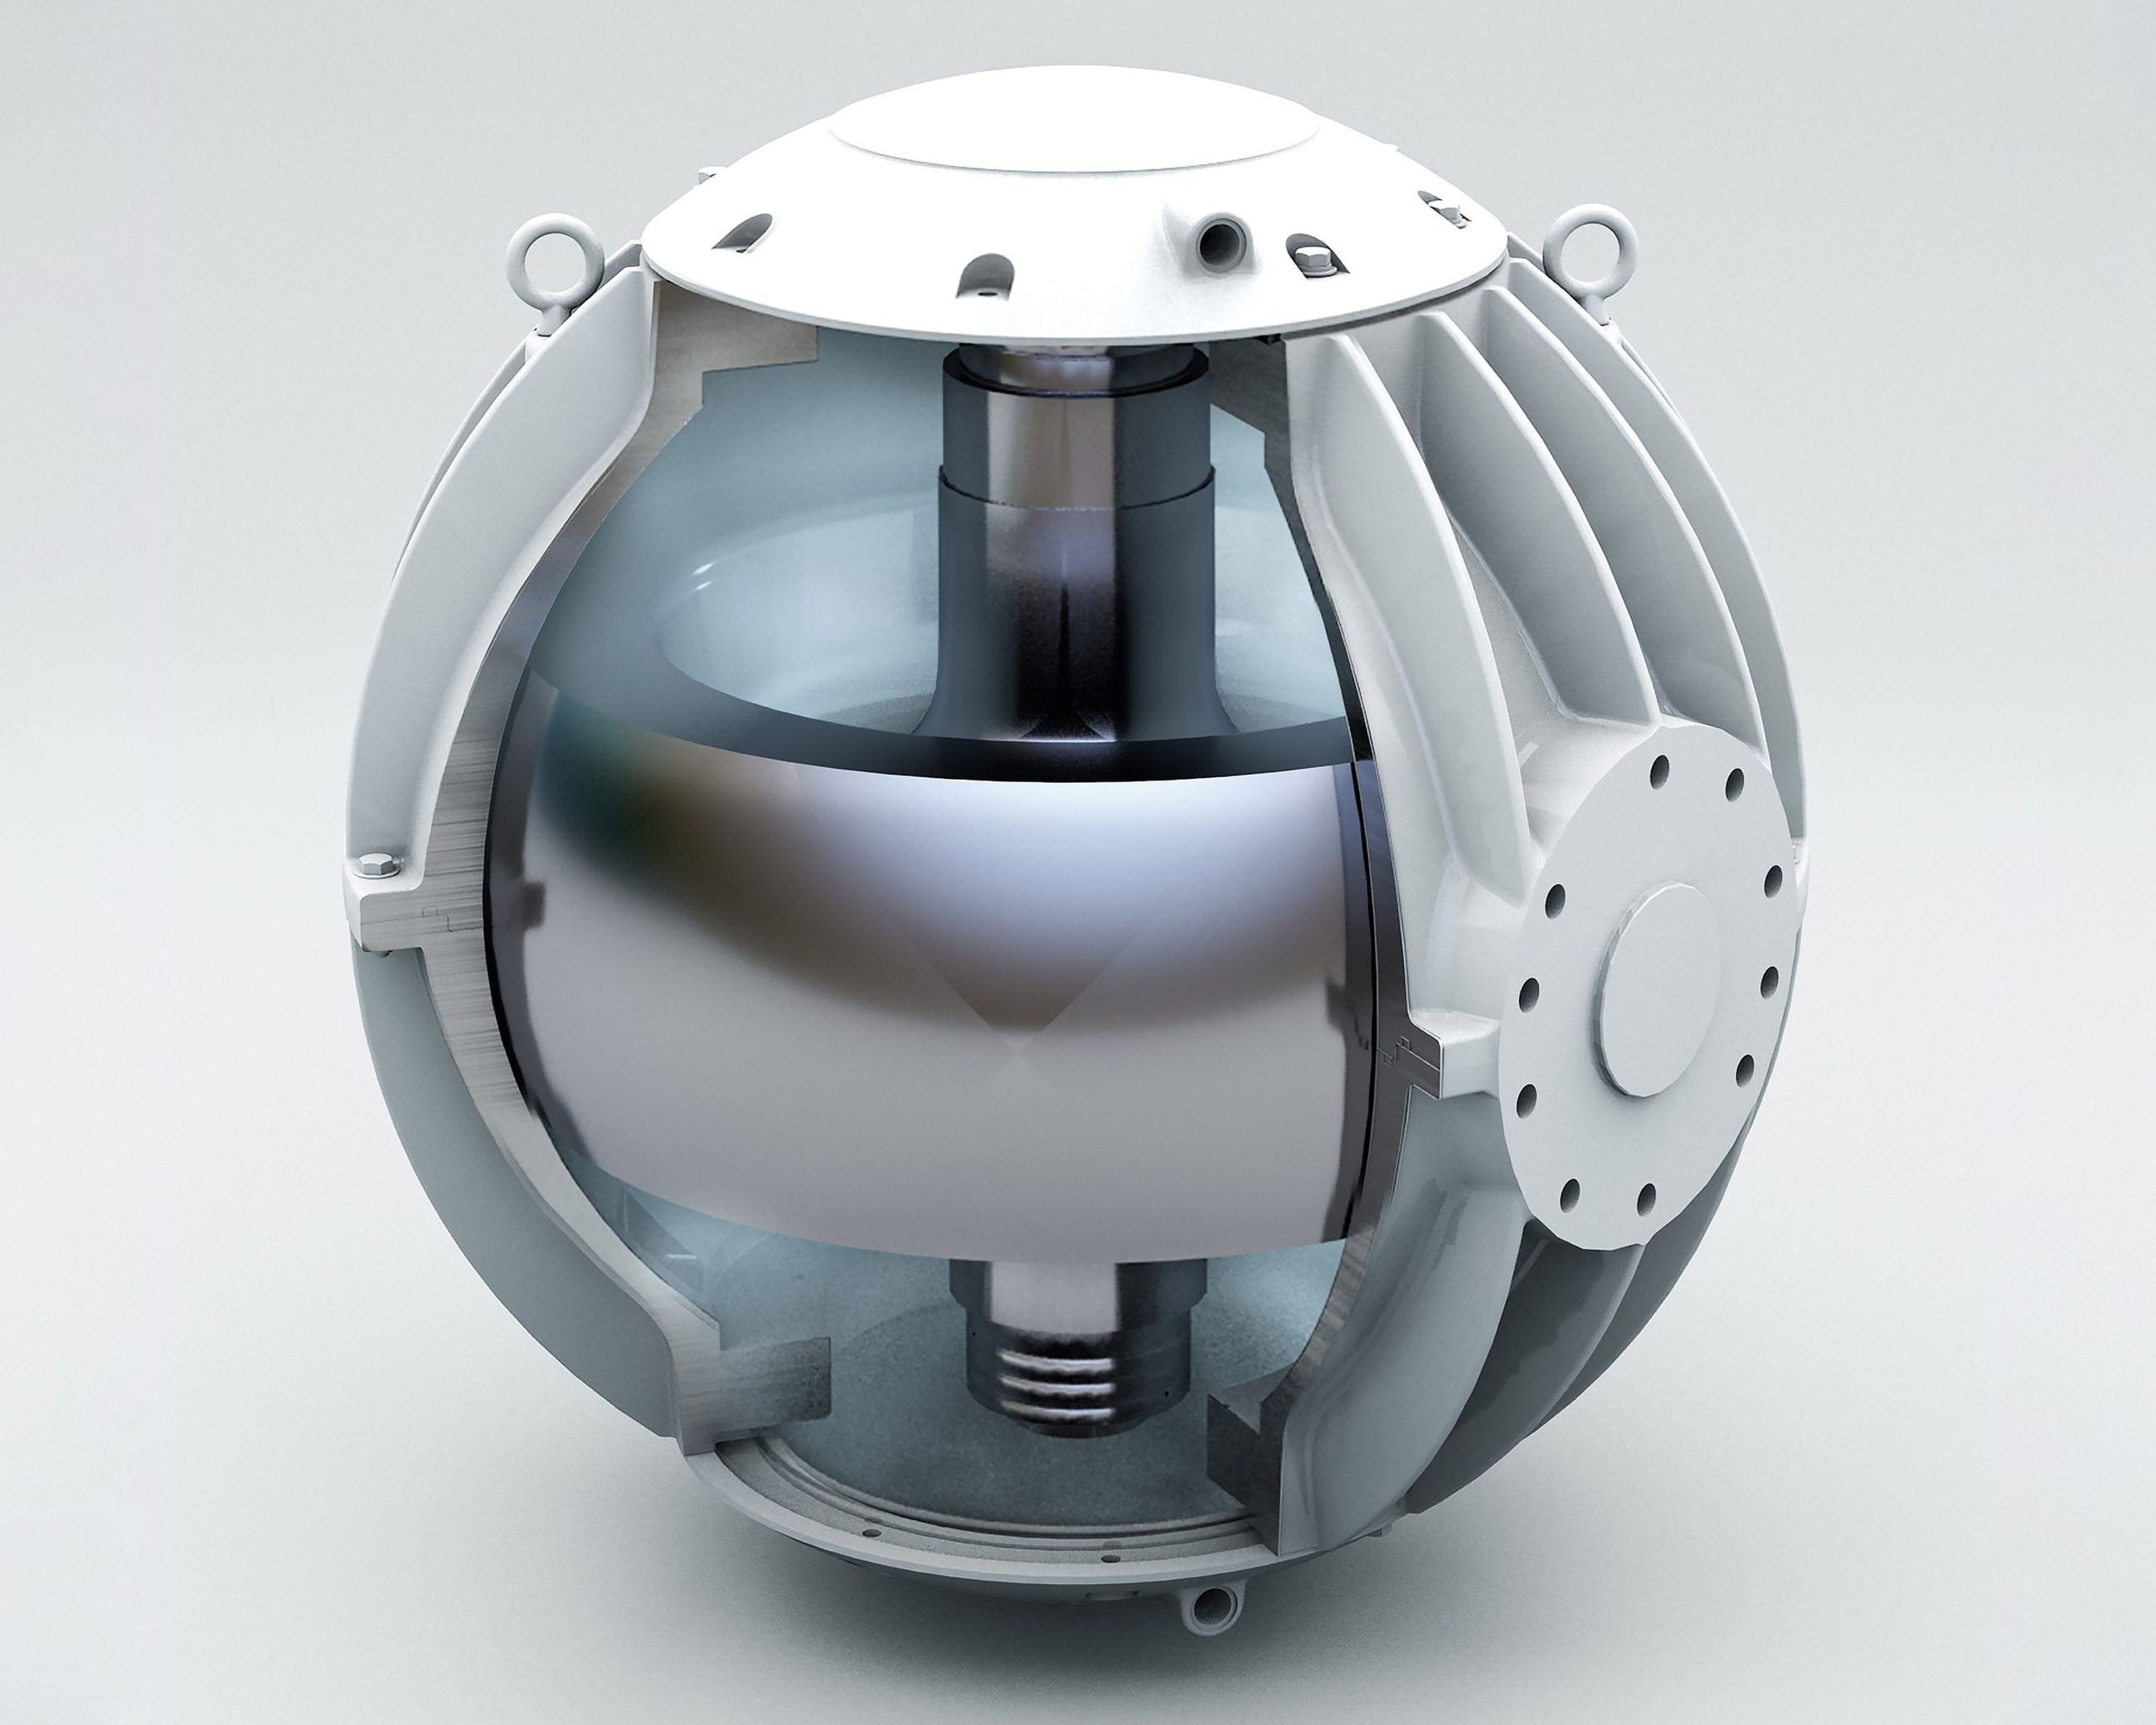 Photo of the gyroscope that is inside of the Seakeeper systems.